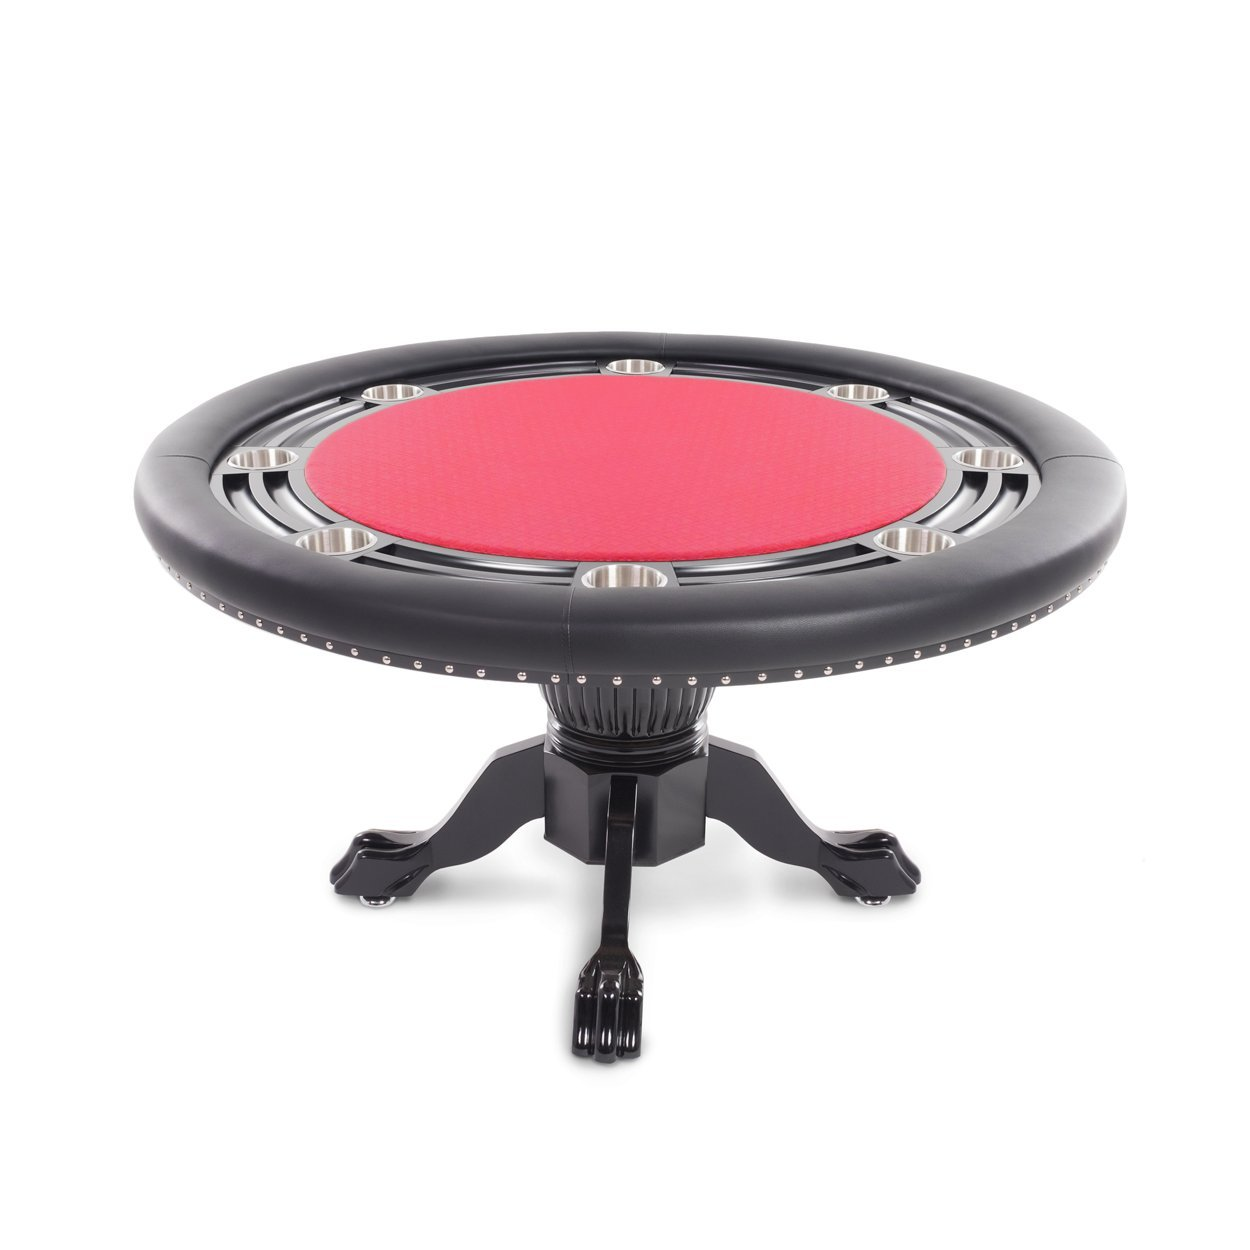 BBO Poker Nighthawk Poker Table for 8 Players with Red Speed Cloth Playing Surface, 55-Inch Round